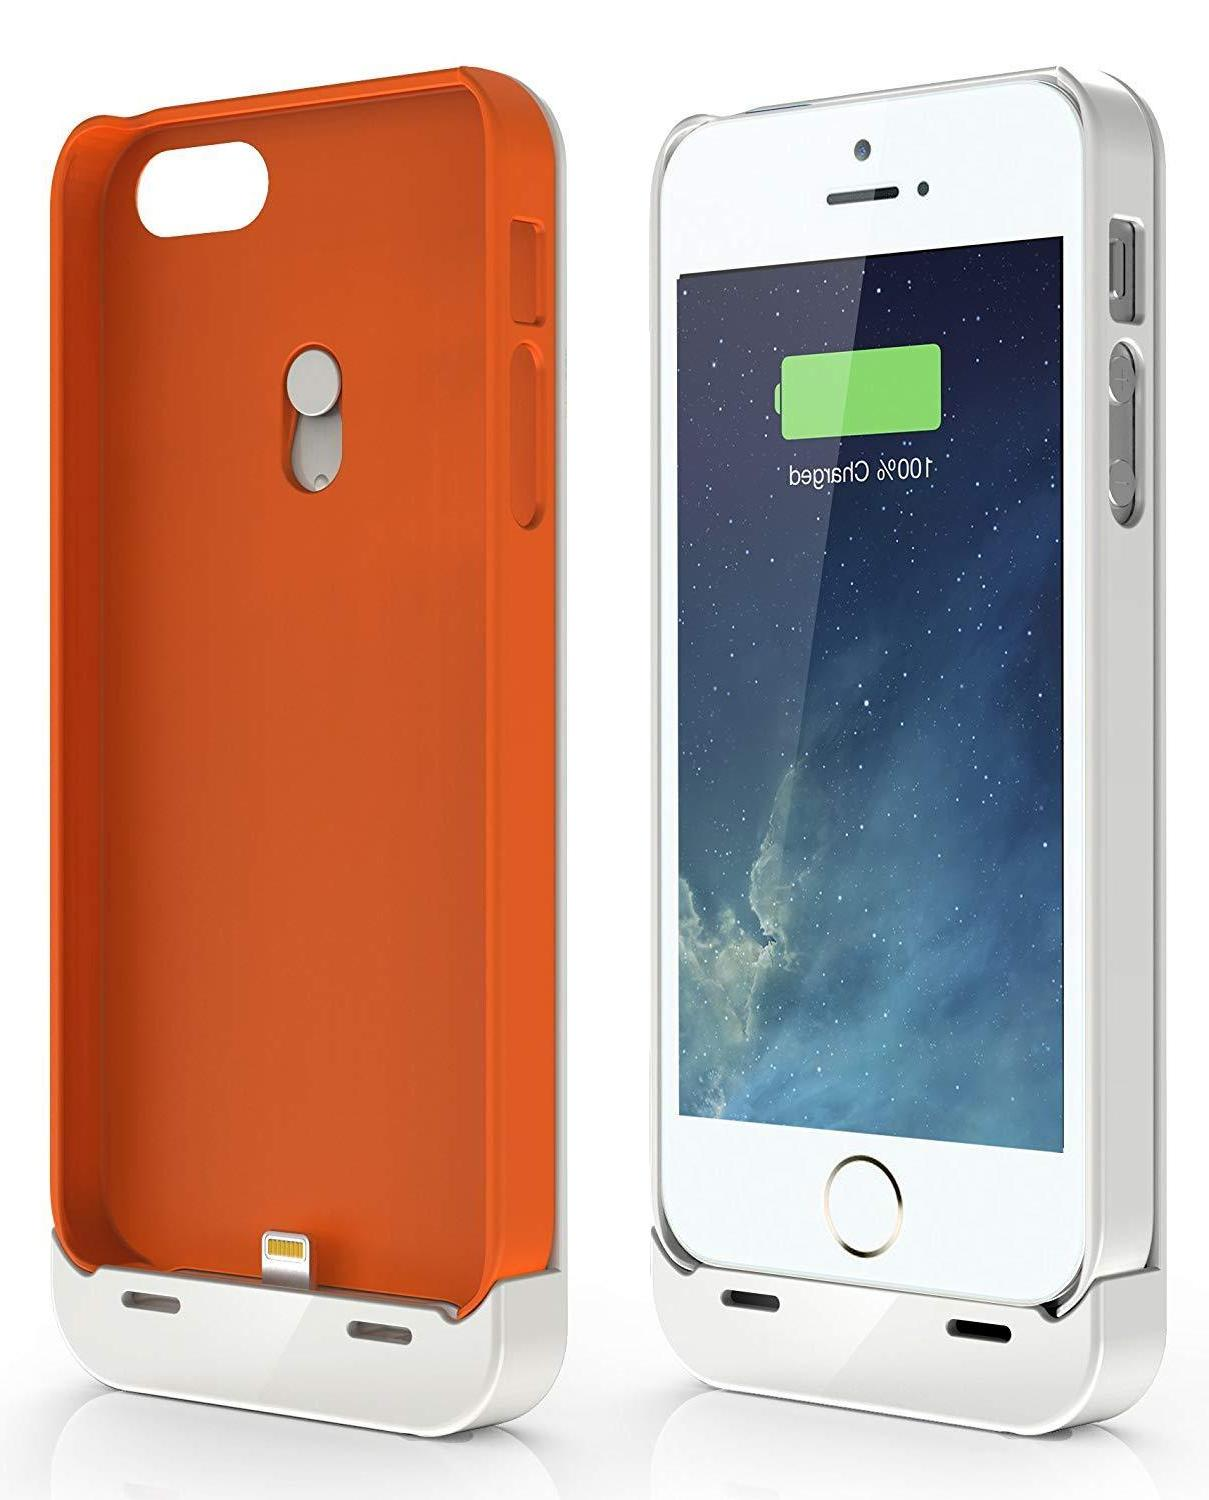 Jackery Leaf Premium iPhone SE Charger Case Power Bank for i